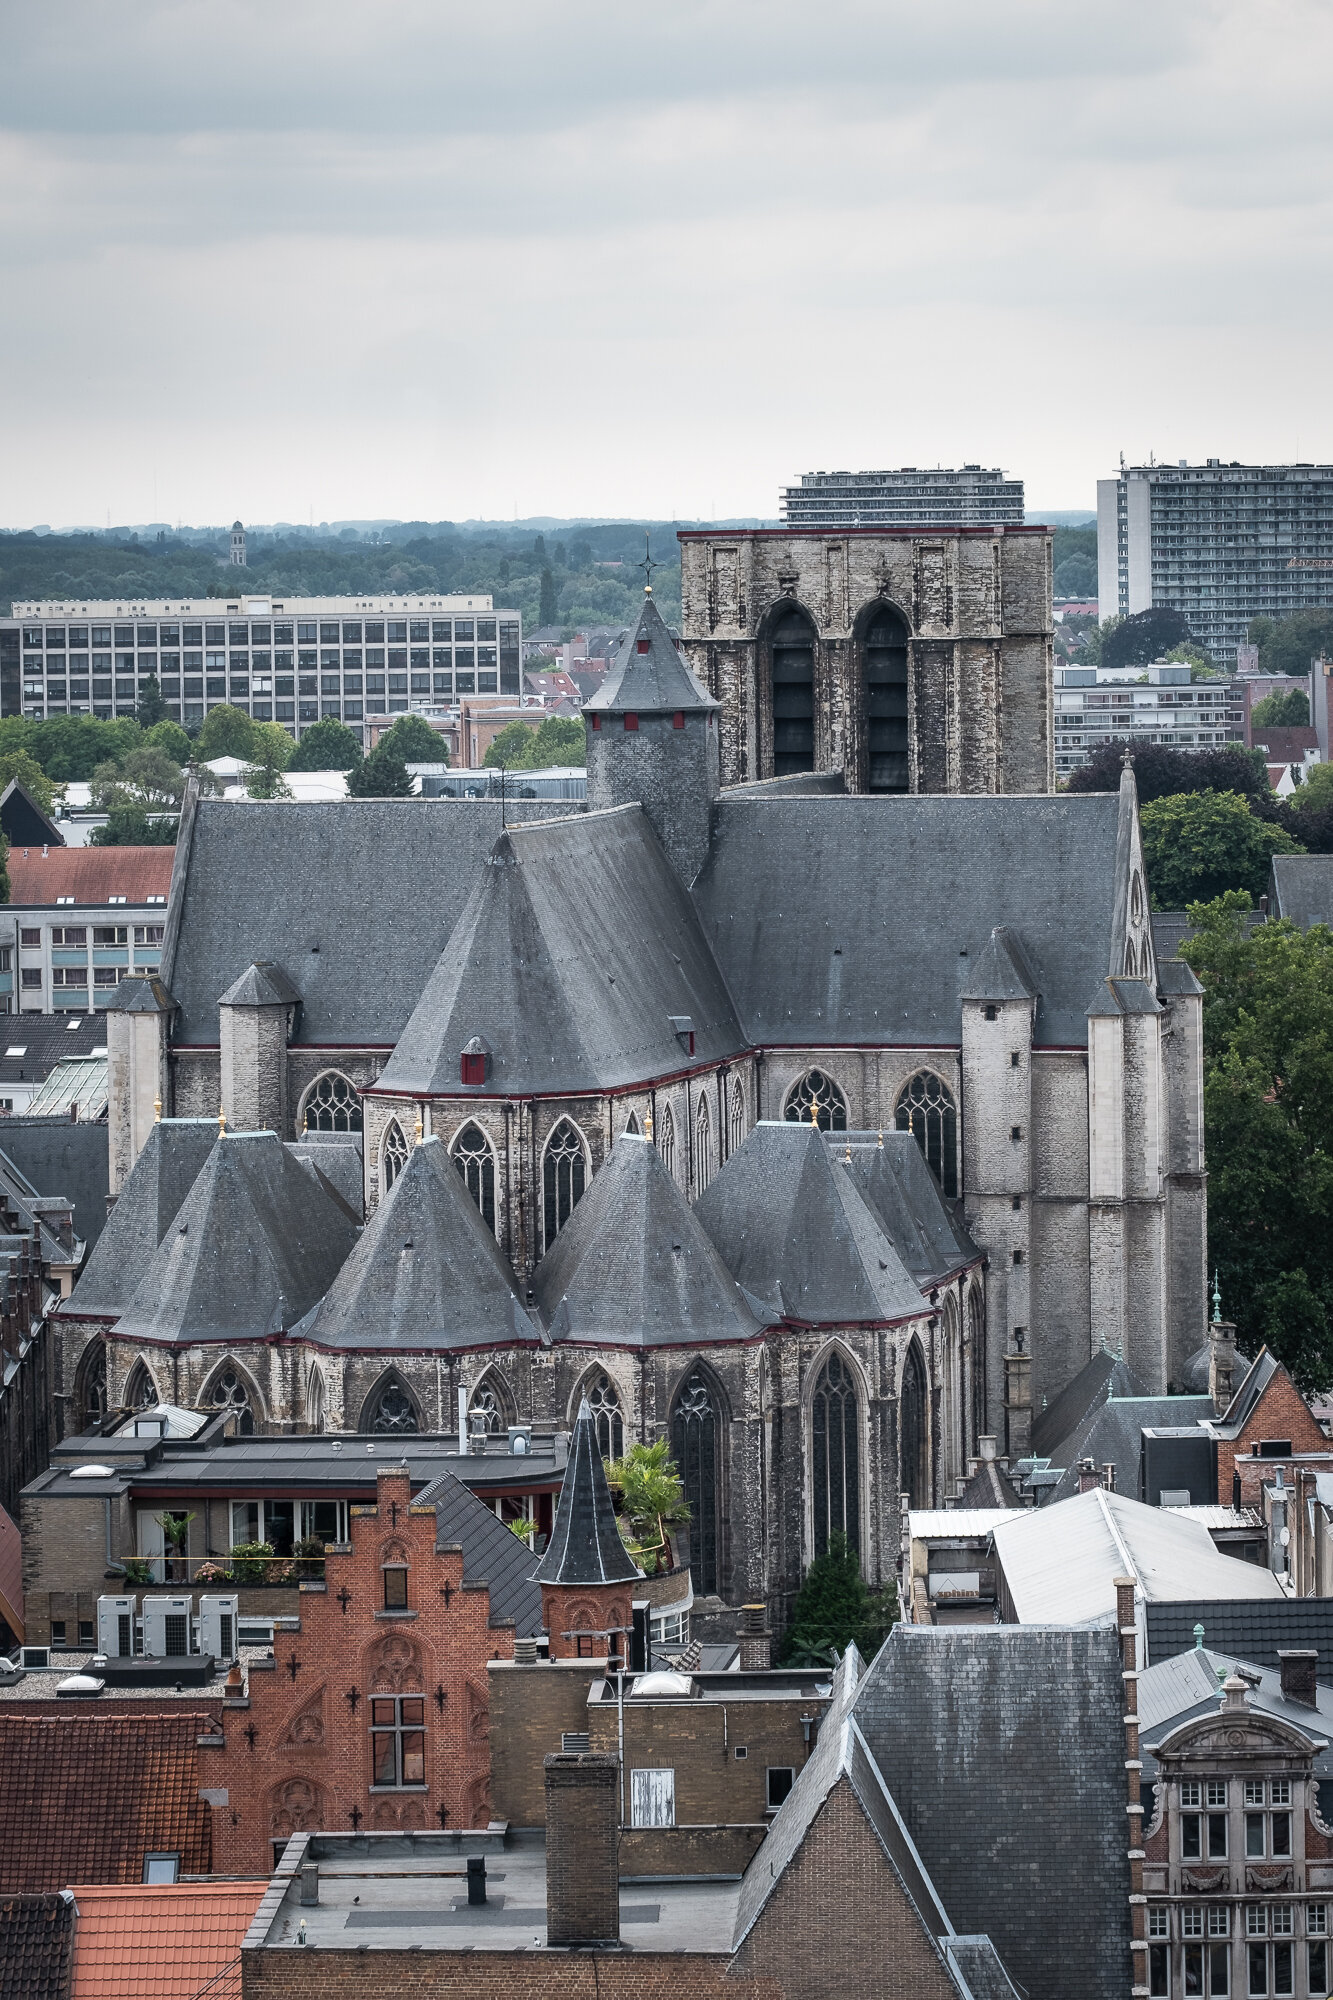 Saint Michael's Church taken from atop the Belfry of Ghent